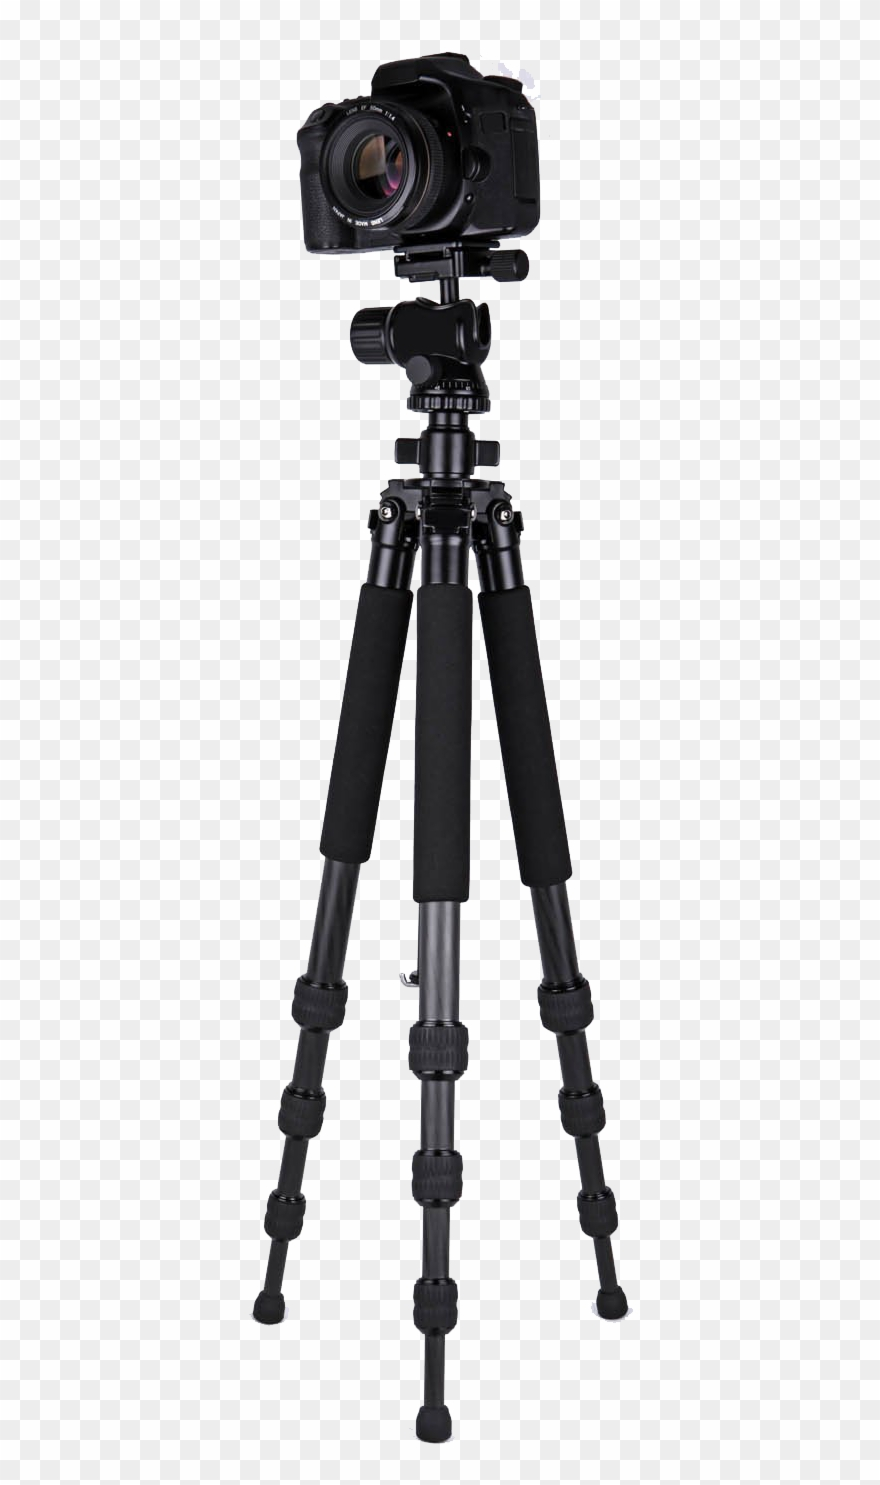 Video Camera Tripod Png Image.